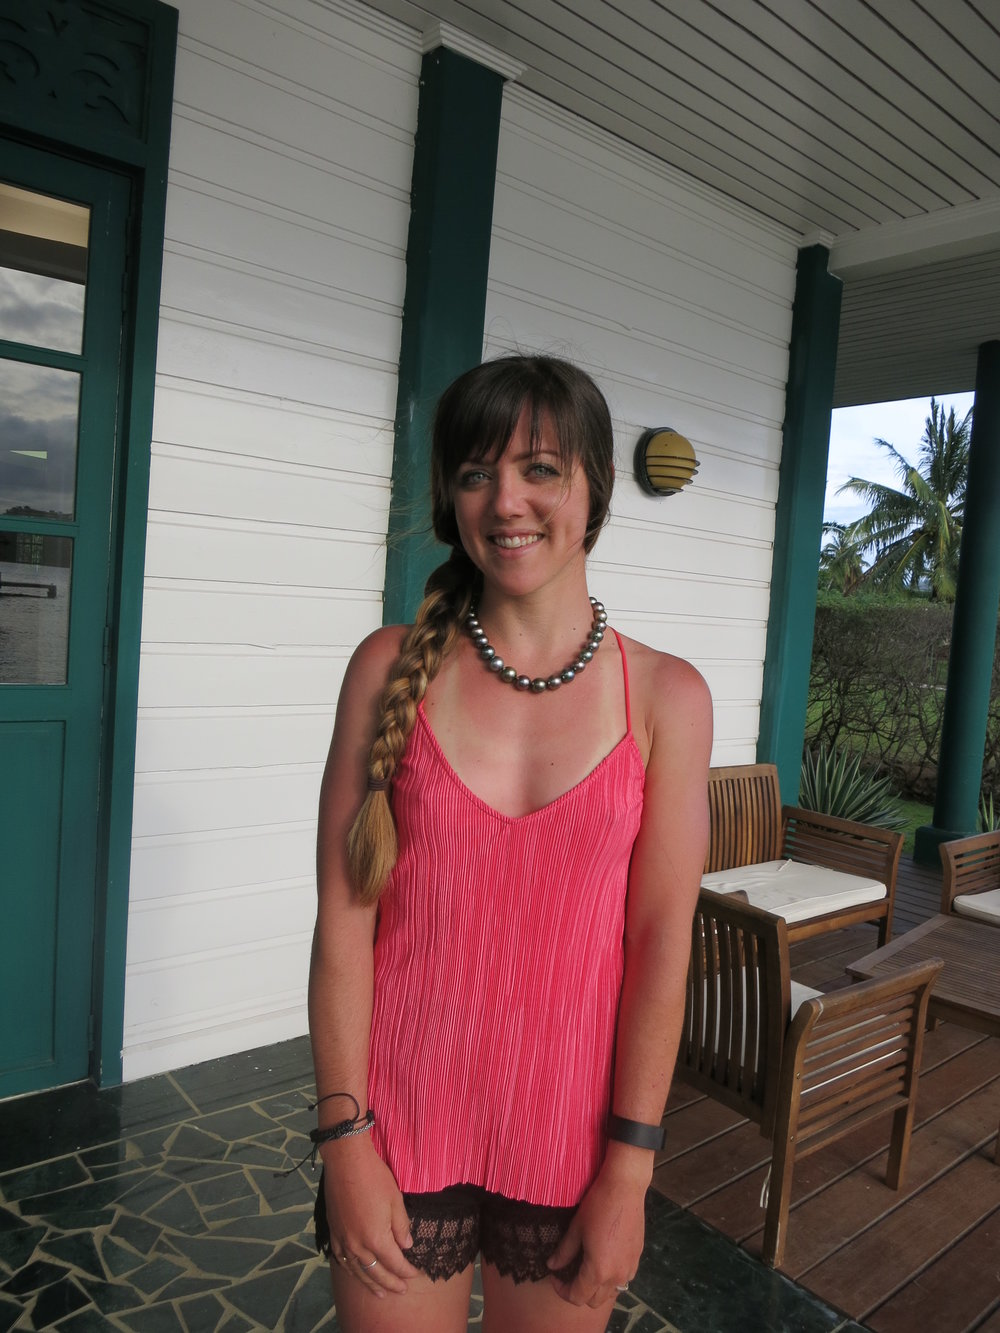 Before we went to dinner, we stopped at the Robert Wan pearl shop, where the wonderful sales associate Lydia allowed me to completely ruin the beauty of this $150,000 Tahitian pearl necklace with my many stages of sunburn.